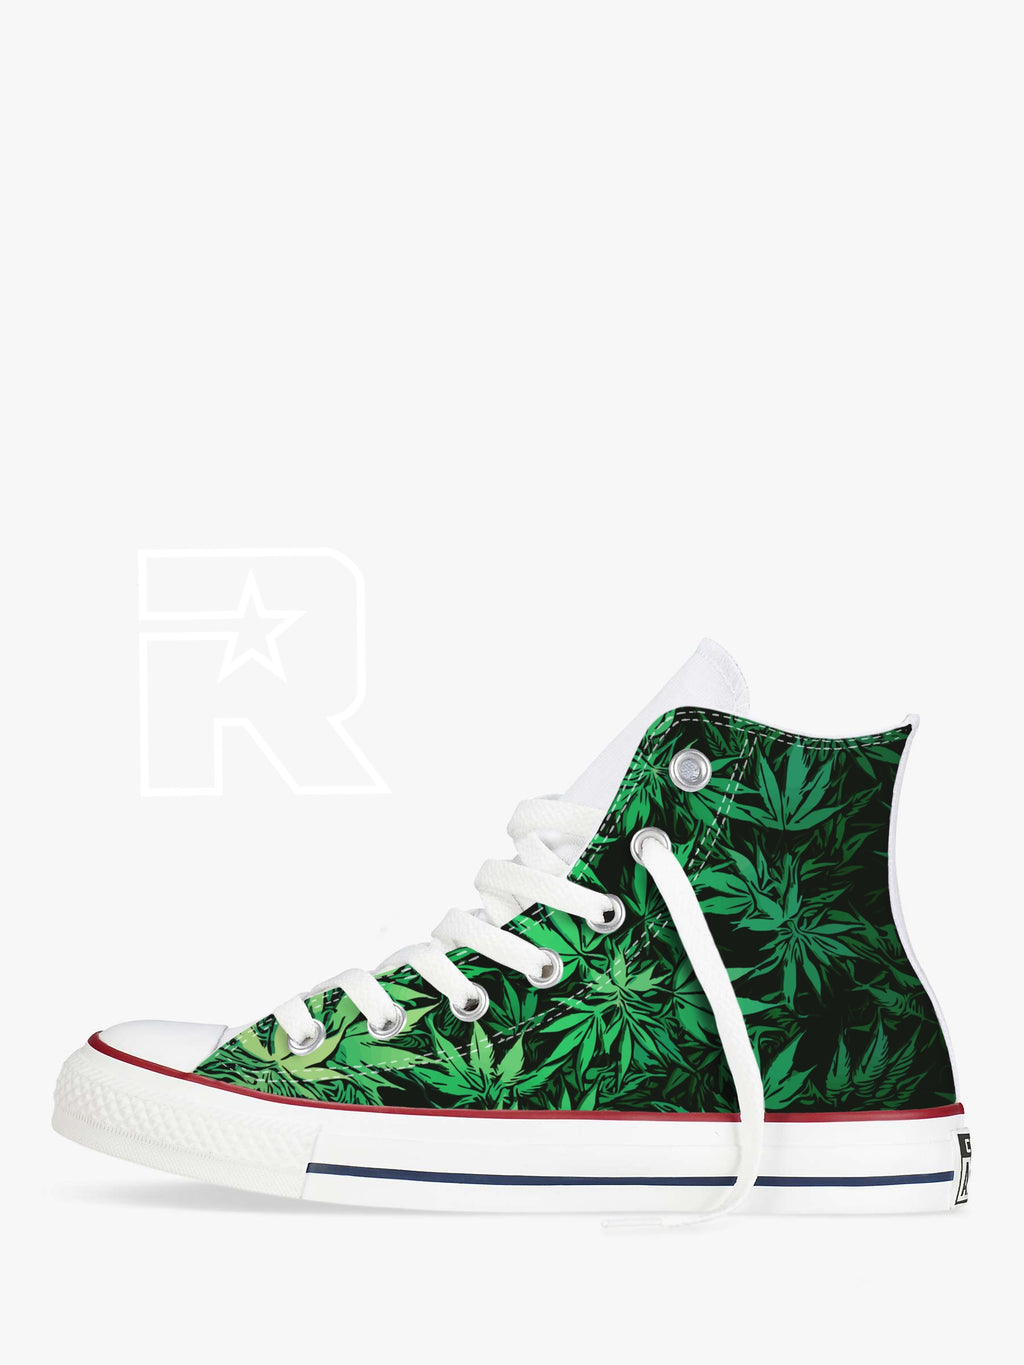 Keep NZ Green High Top Converse